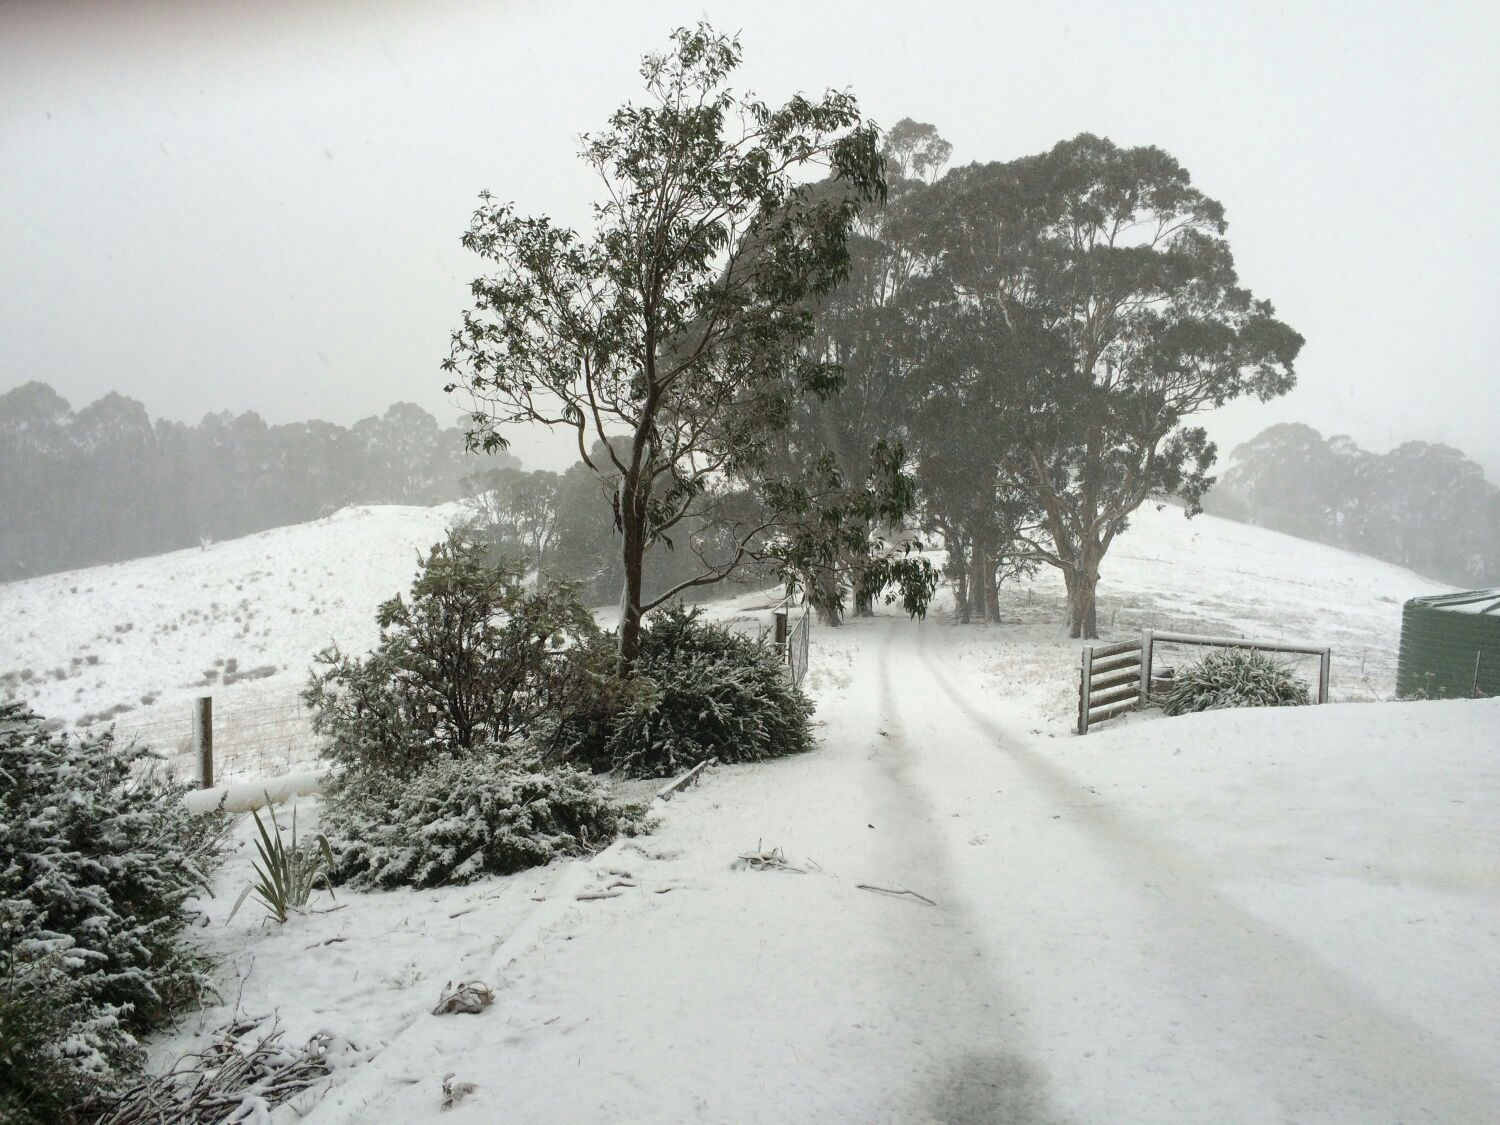 Snow in the Jeeralangs